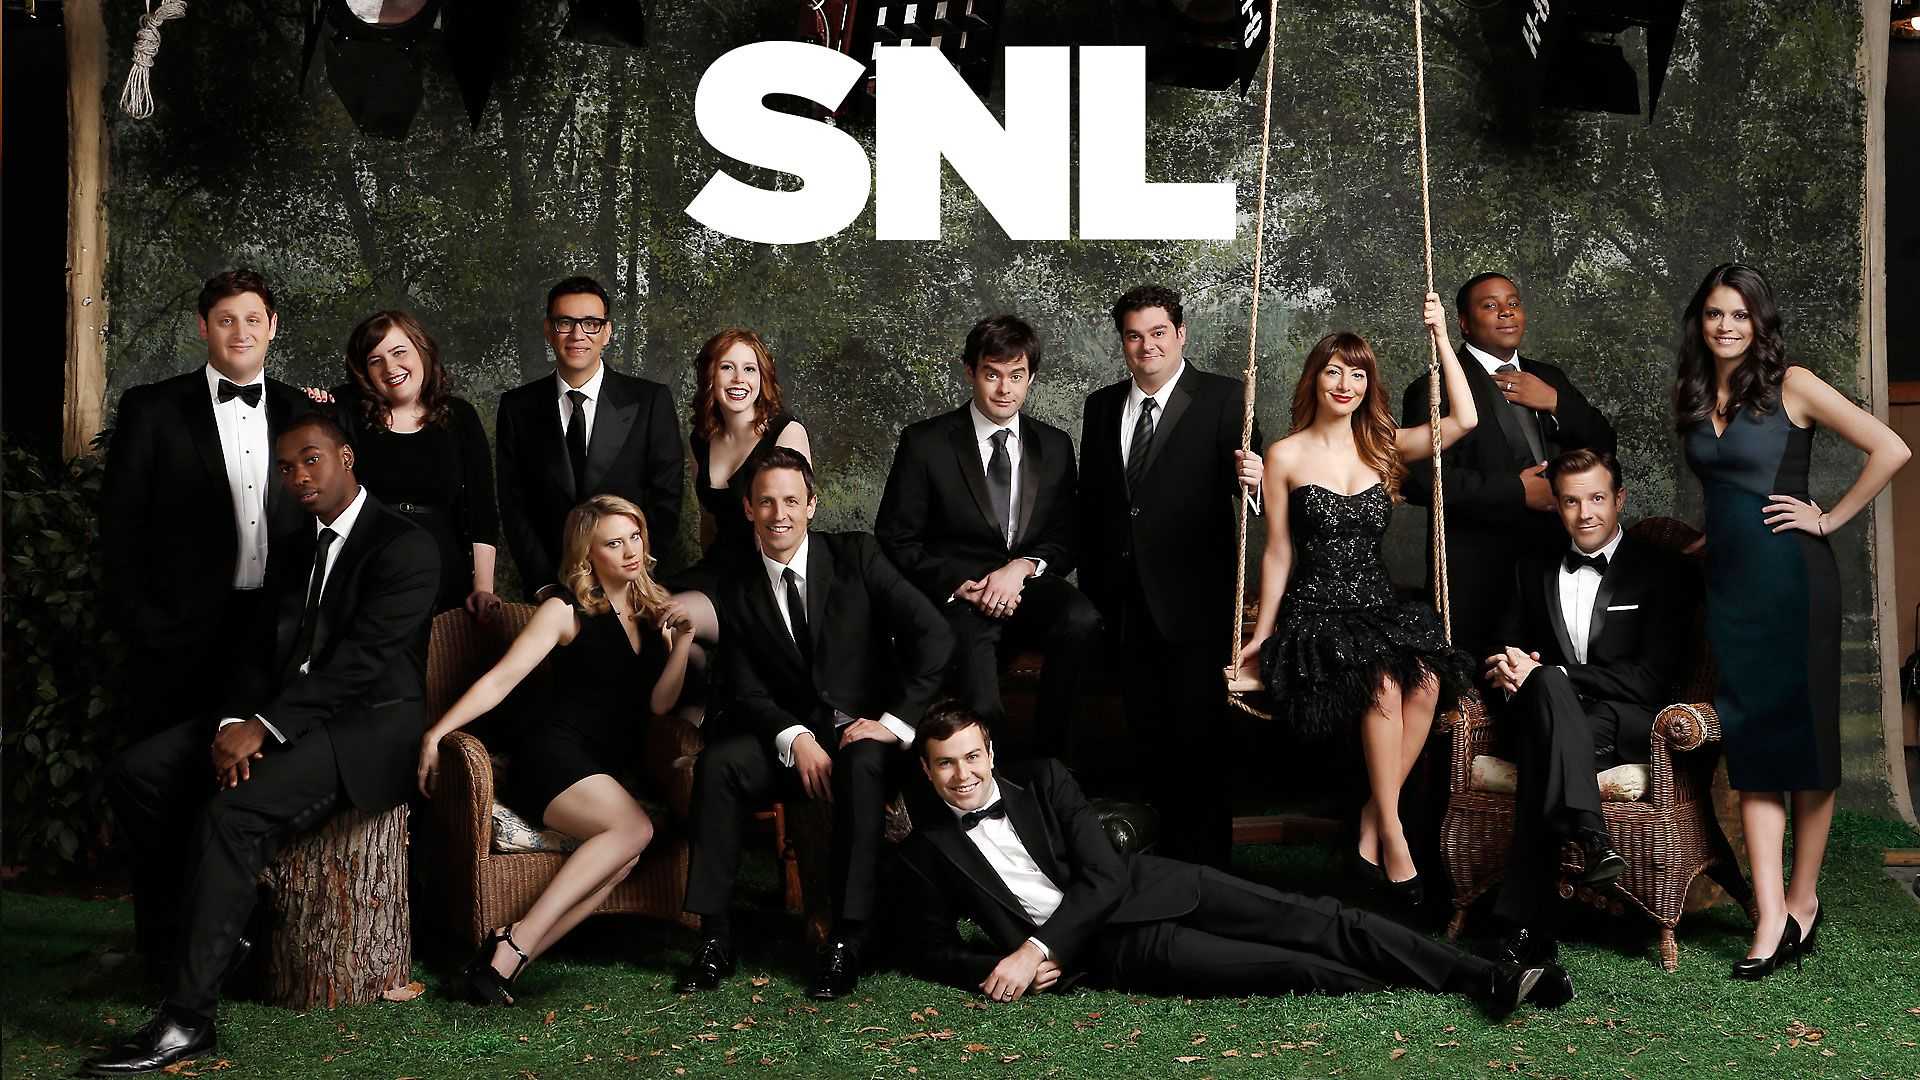 ... saturday night live wallpaper-10 ...